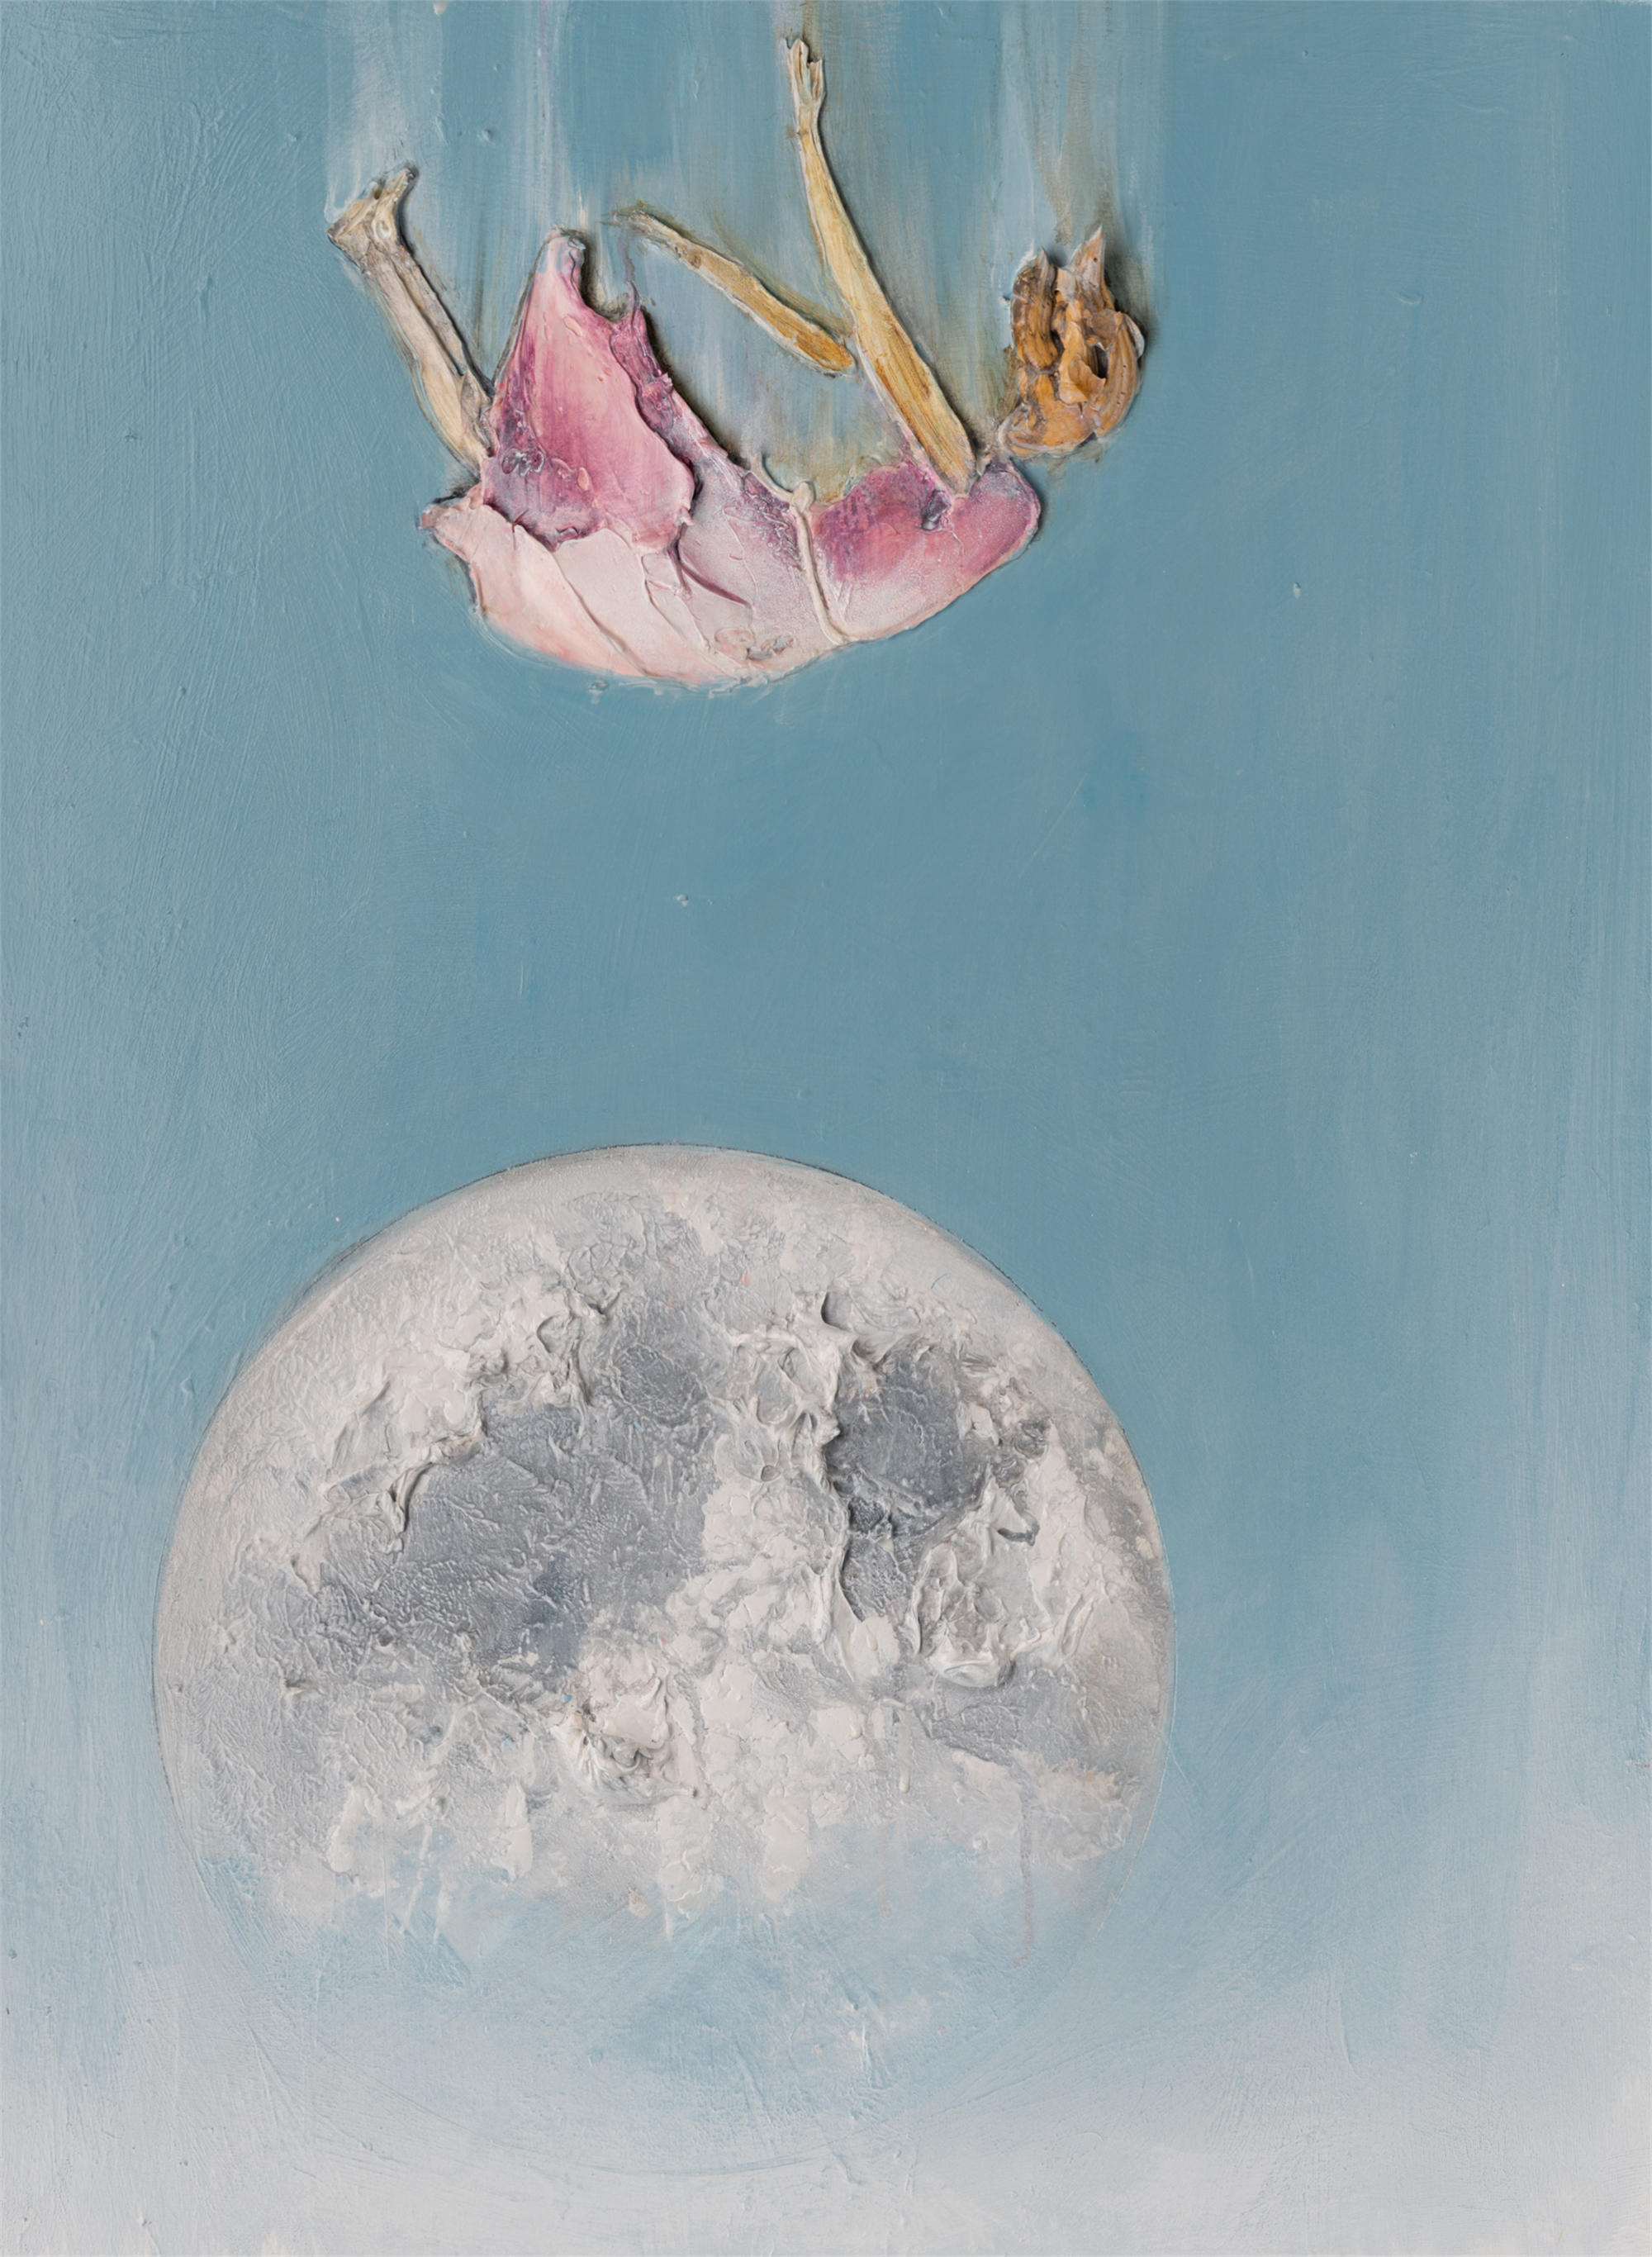 LADY MOON 2 MS-30X40-2019-314 by JUSTIN GAFFREY